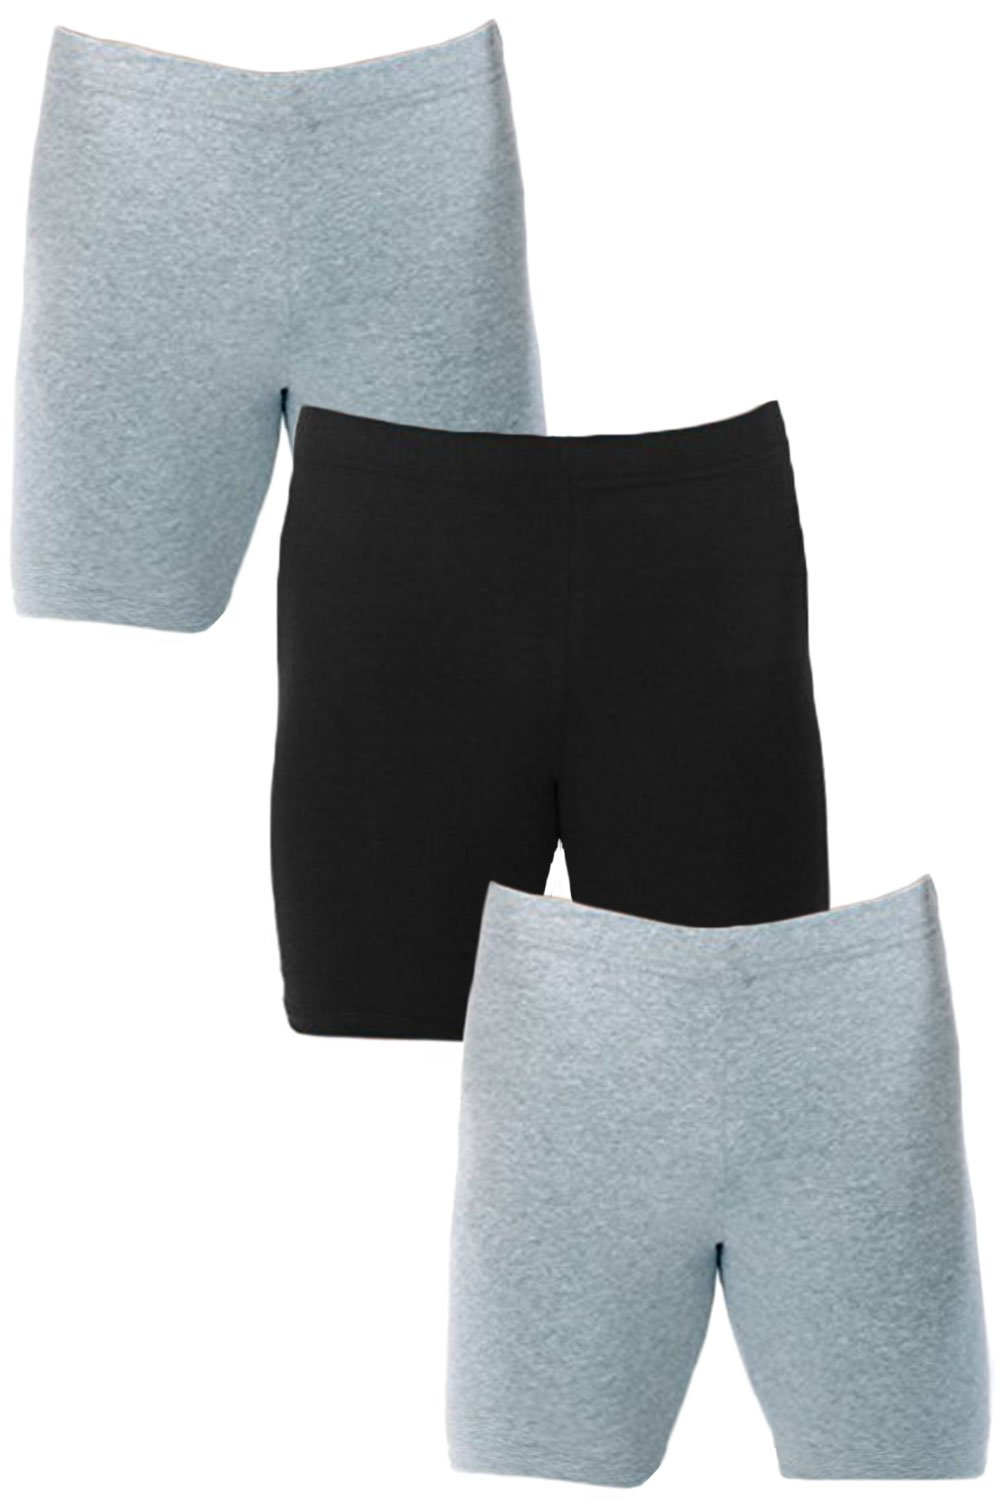 Men's Extreme Core-Champion True Double Dry Compression Short (Small, 3 Pack Grey/Grey/Black)